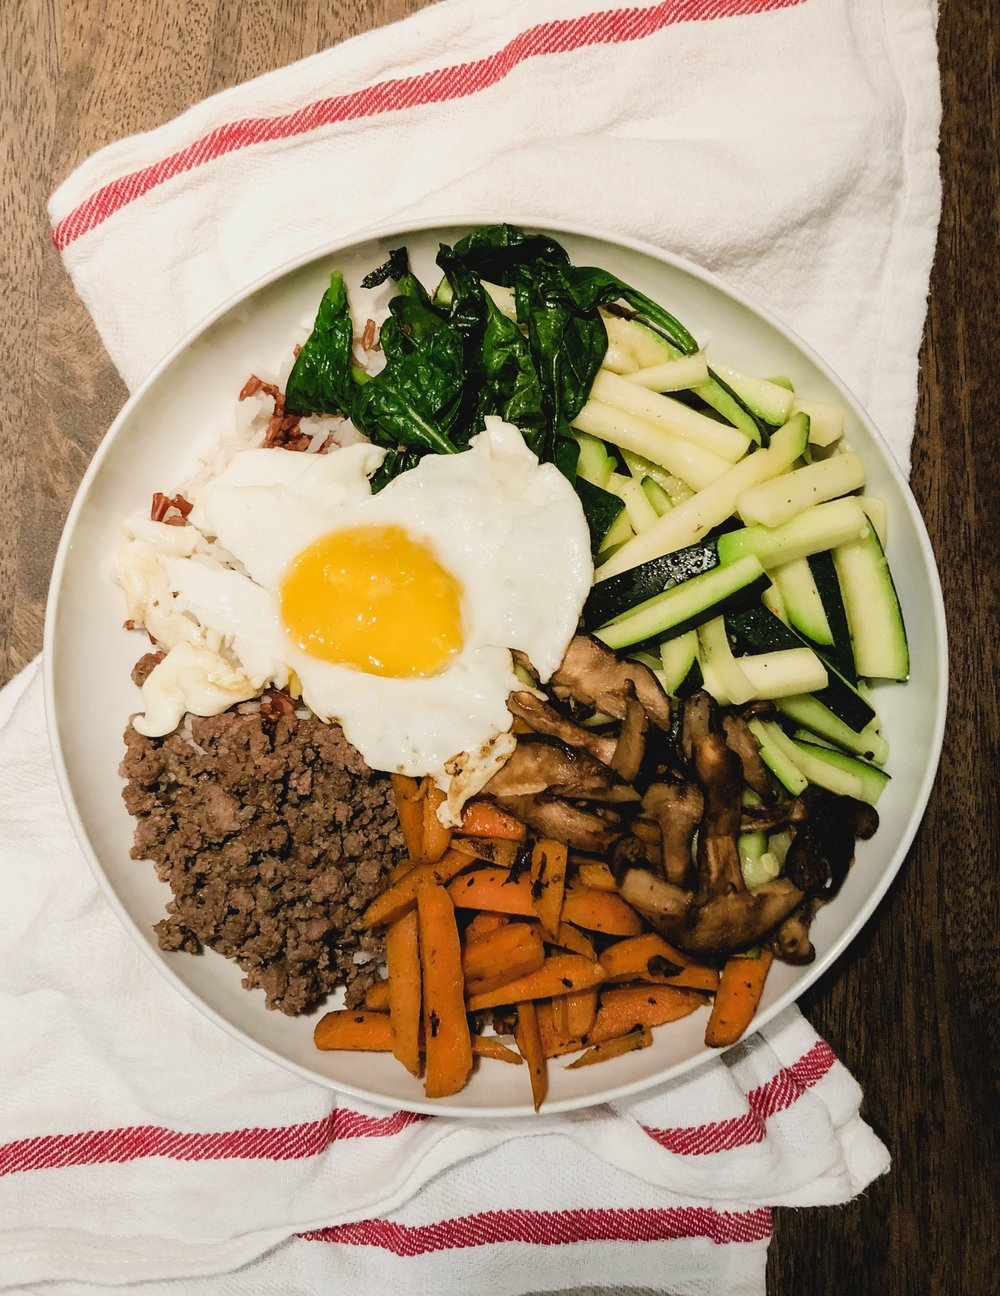 The legendary bibimbap my friends and I made.